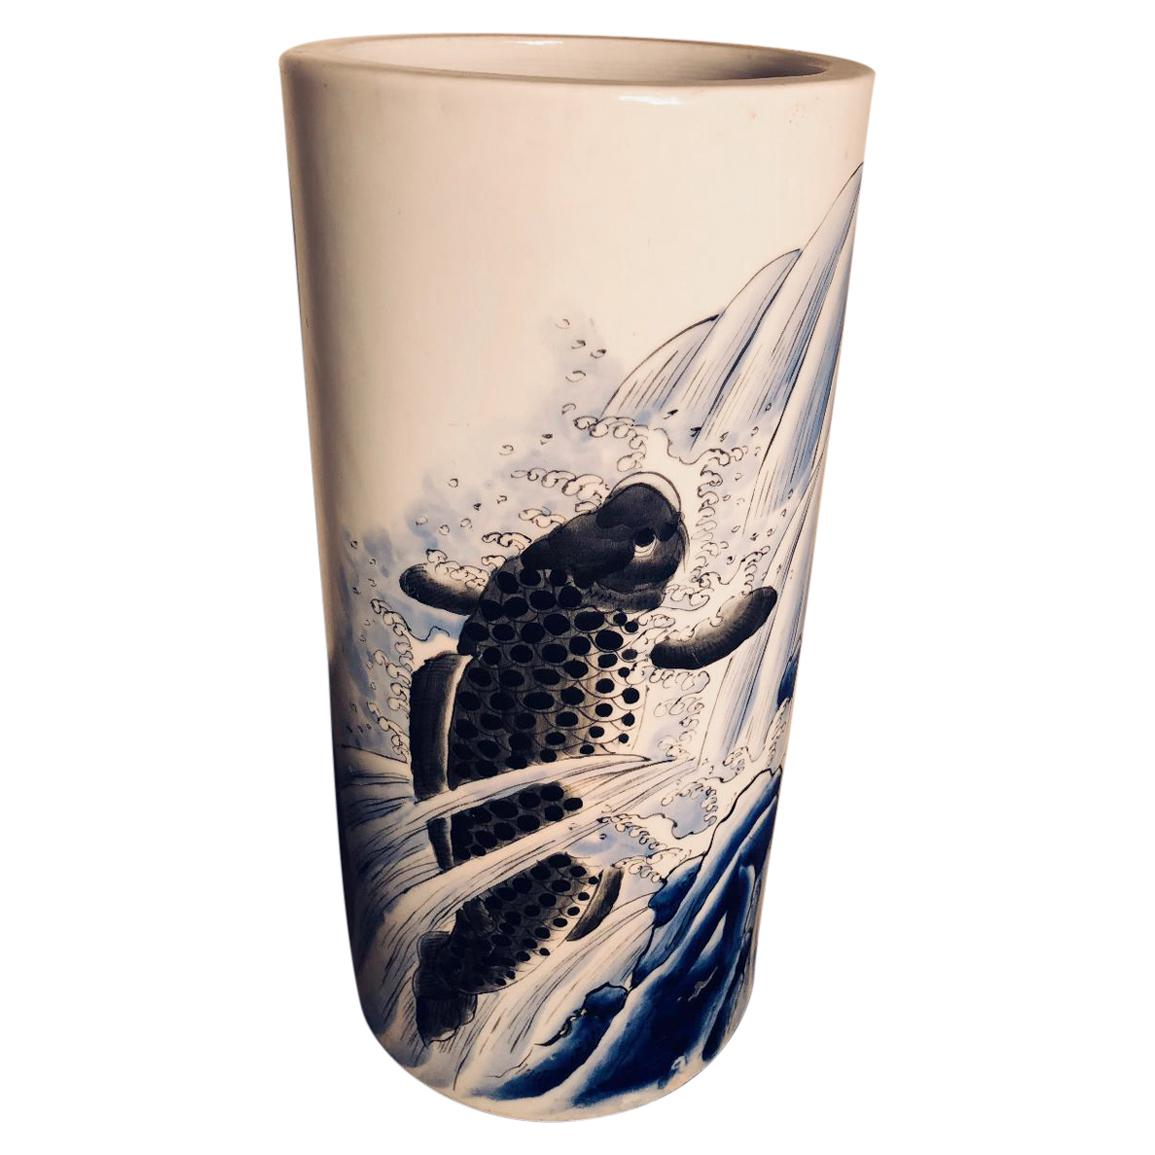 Japanese Antique Koi & Waves Vase Blue Hand-Painted, Early 20th Century